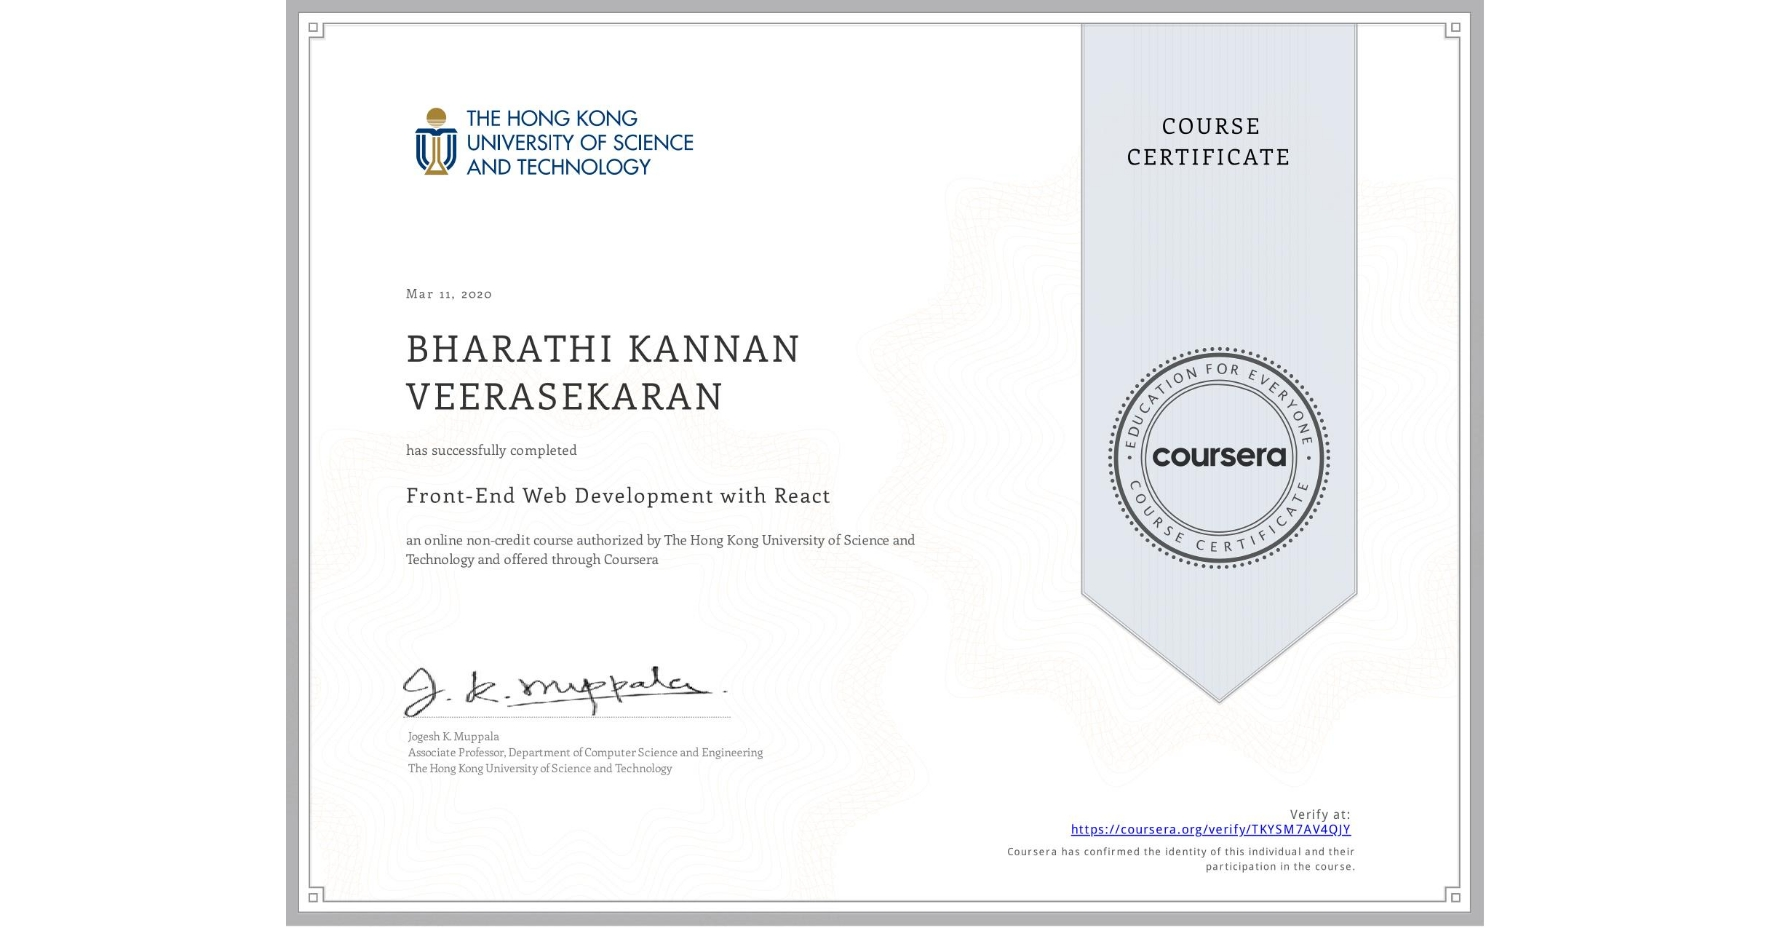 View certificate for BHARATHI KANNAN  VEERASEKARAN, Front-End Web Development with React, an online non-credit course authorized by The Hong Kong University of Science and Technology and offered through Coursera